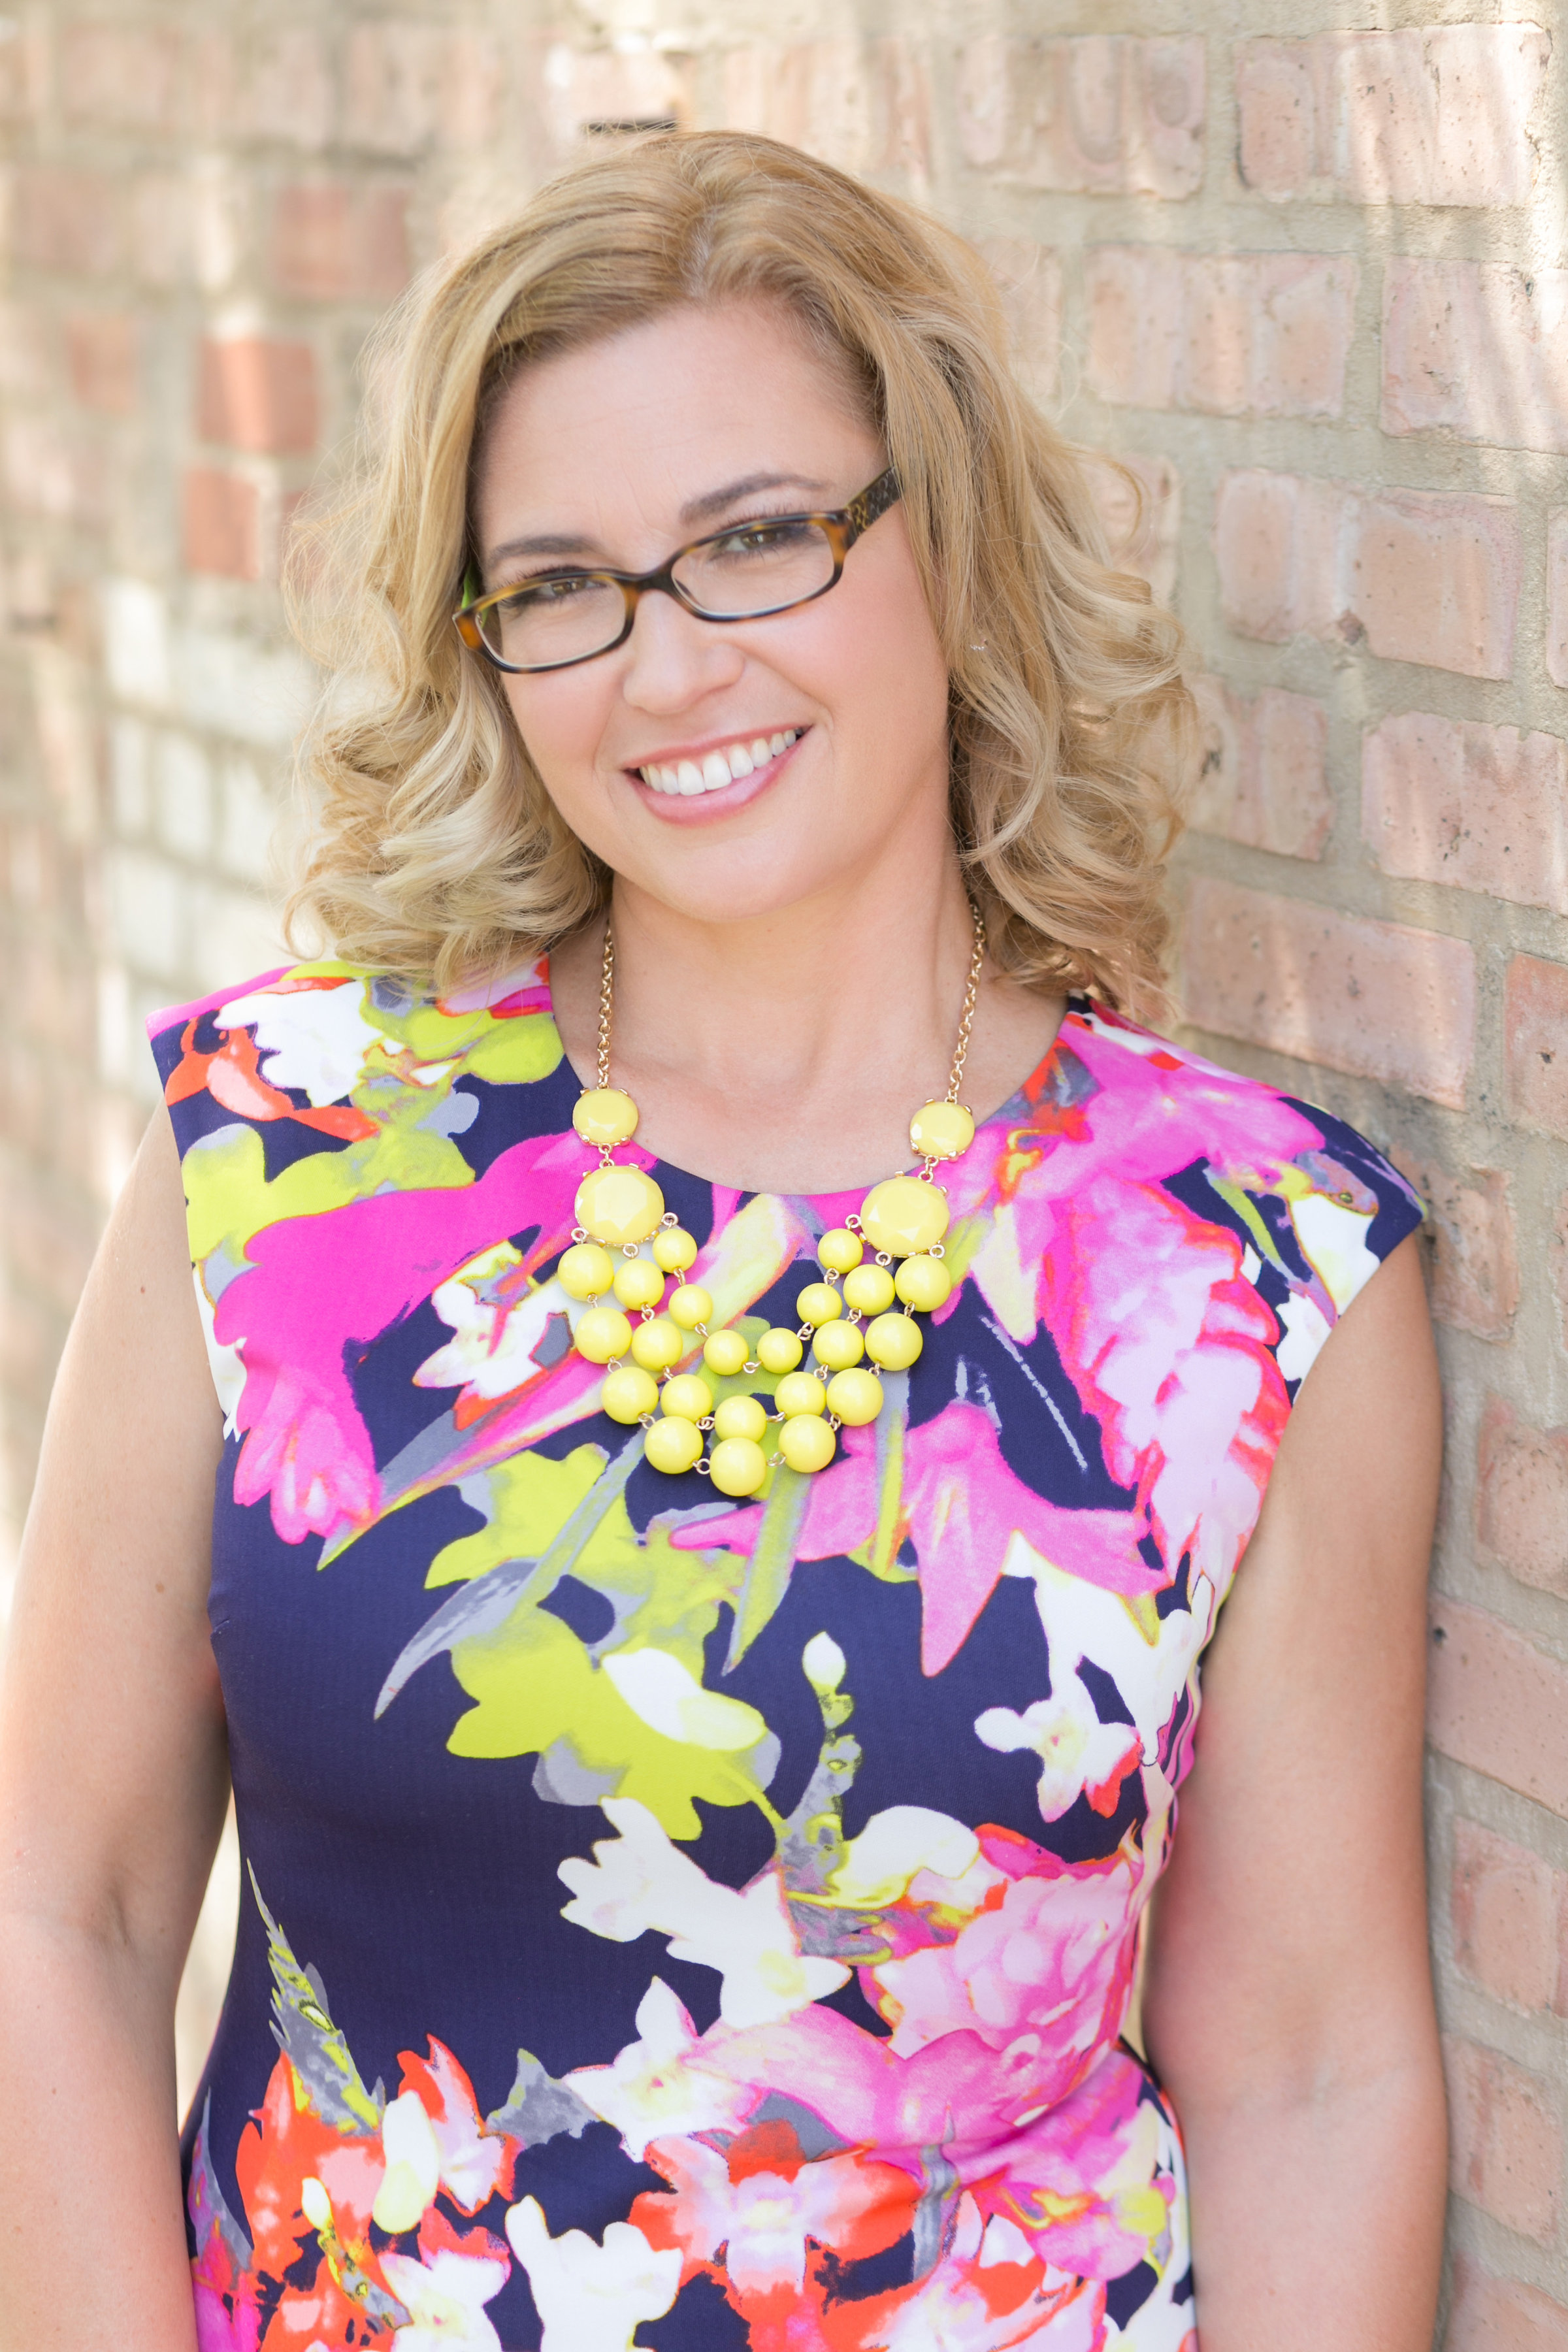 success-coaching-transition-life-coach-heather-vickery-chicago-speaker-014